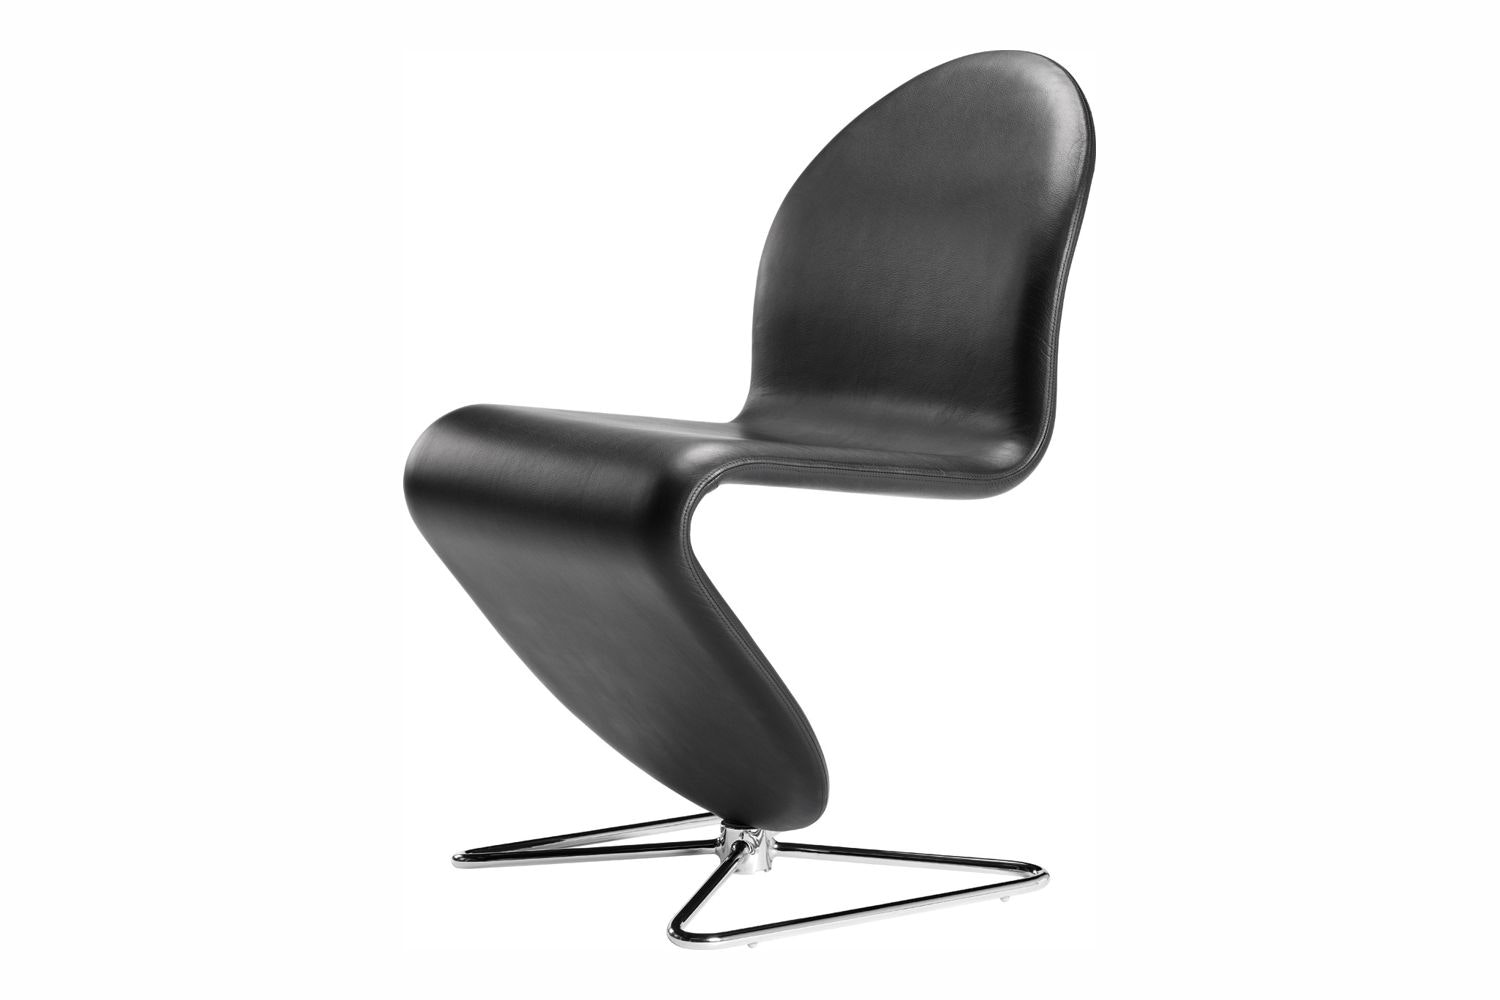 System 1-2-3 Butterfly Dining Chair Standard by Verner Panton for Verpan